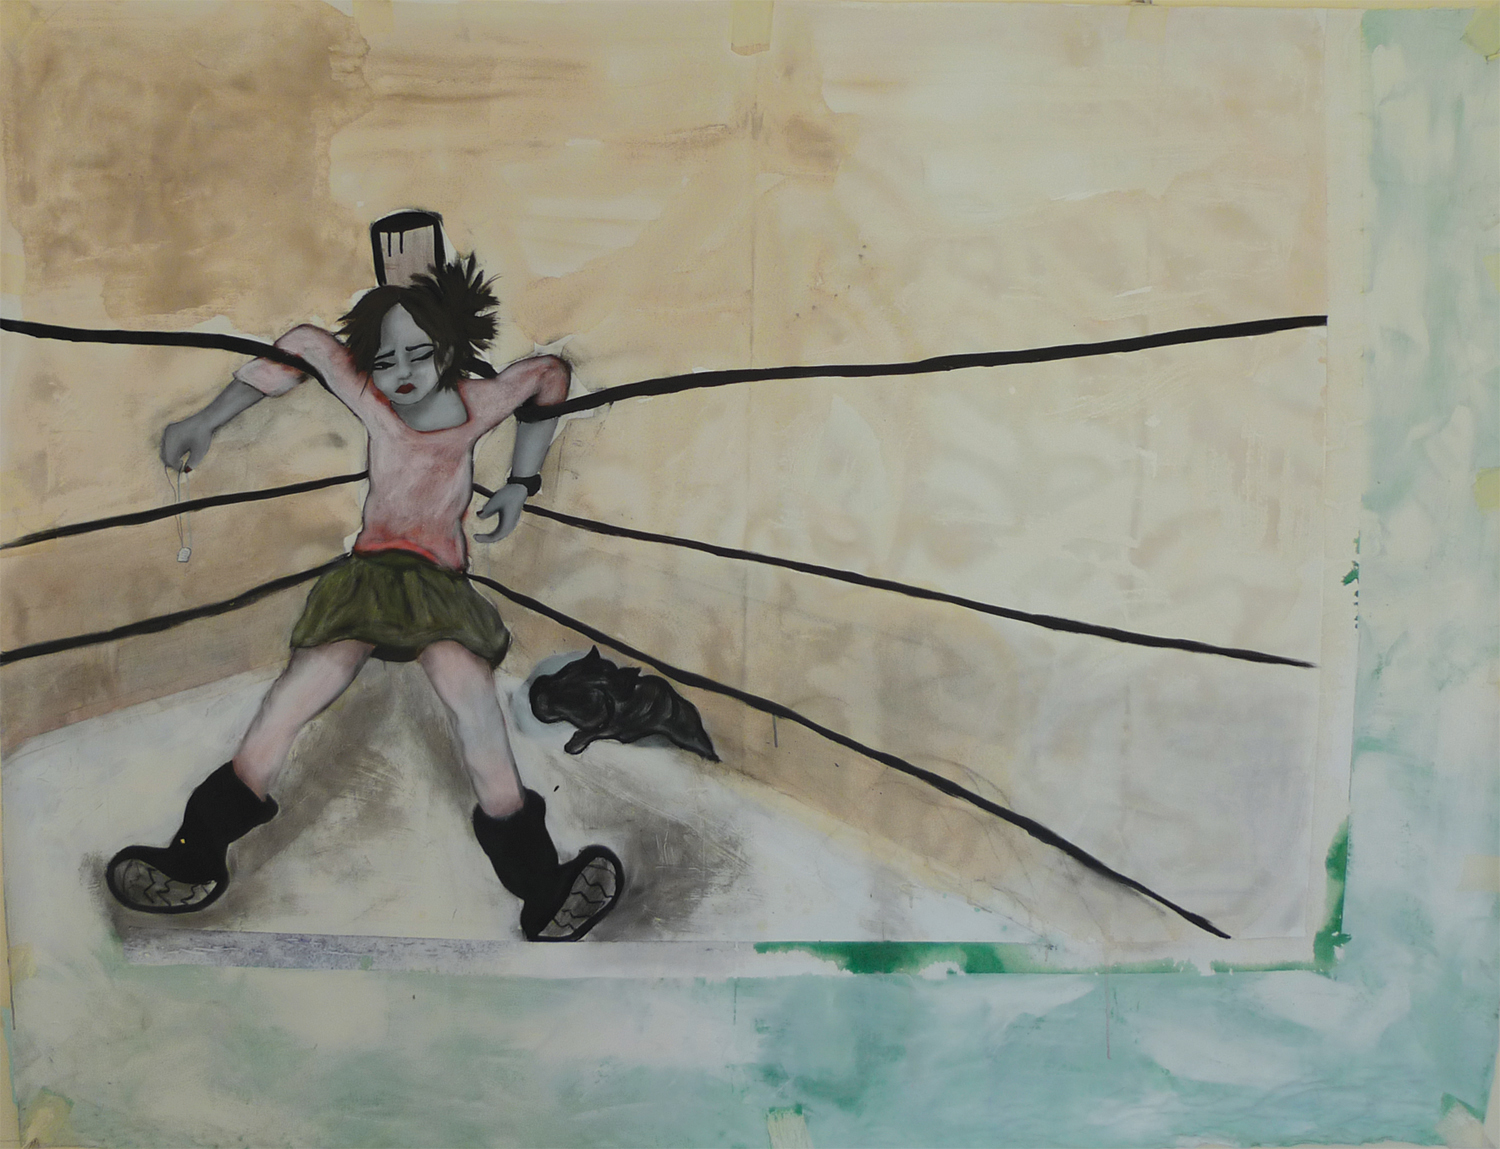 Knocked Out, 2009, acrylic paint on canvas, 156 x 204 cm